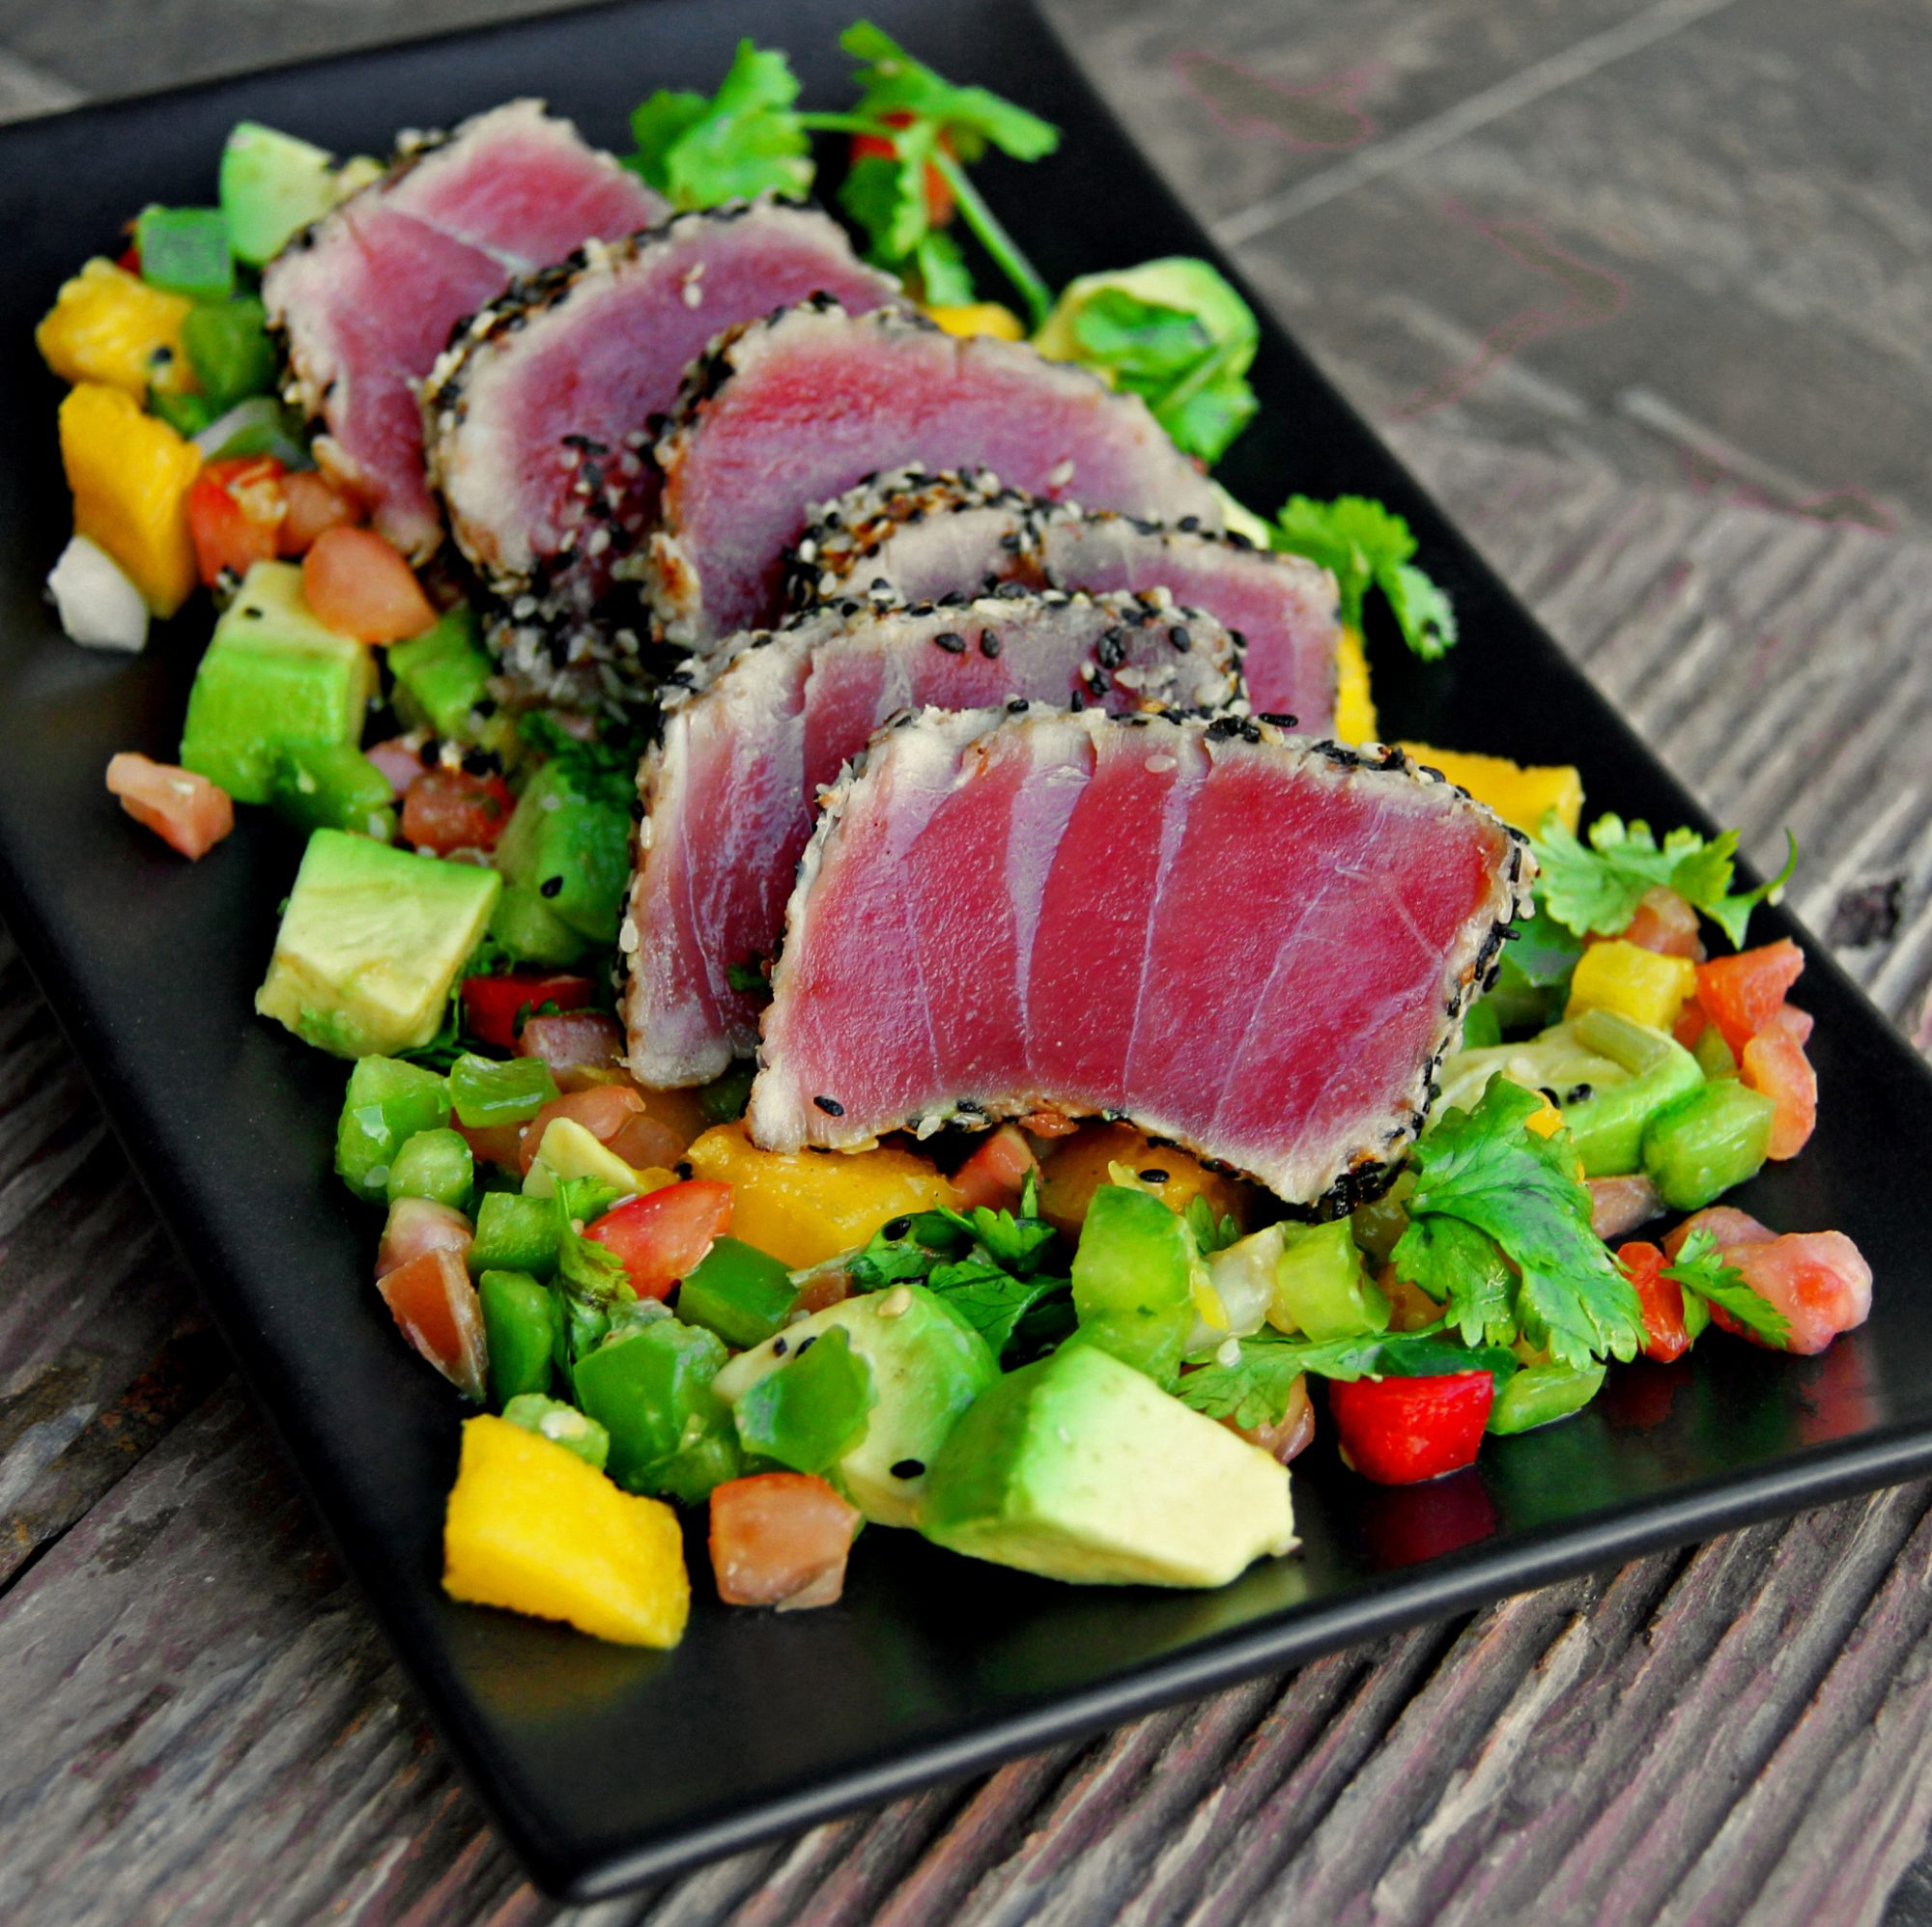 Charbroil Seared Sesame Ahi Tuna